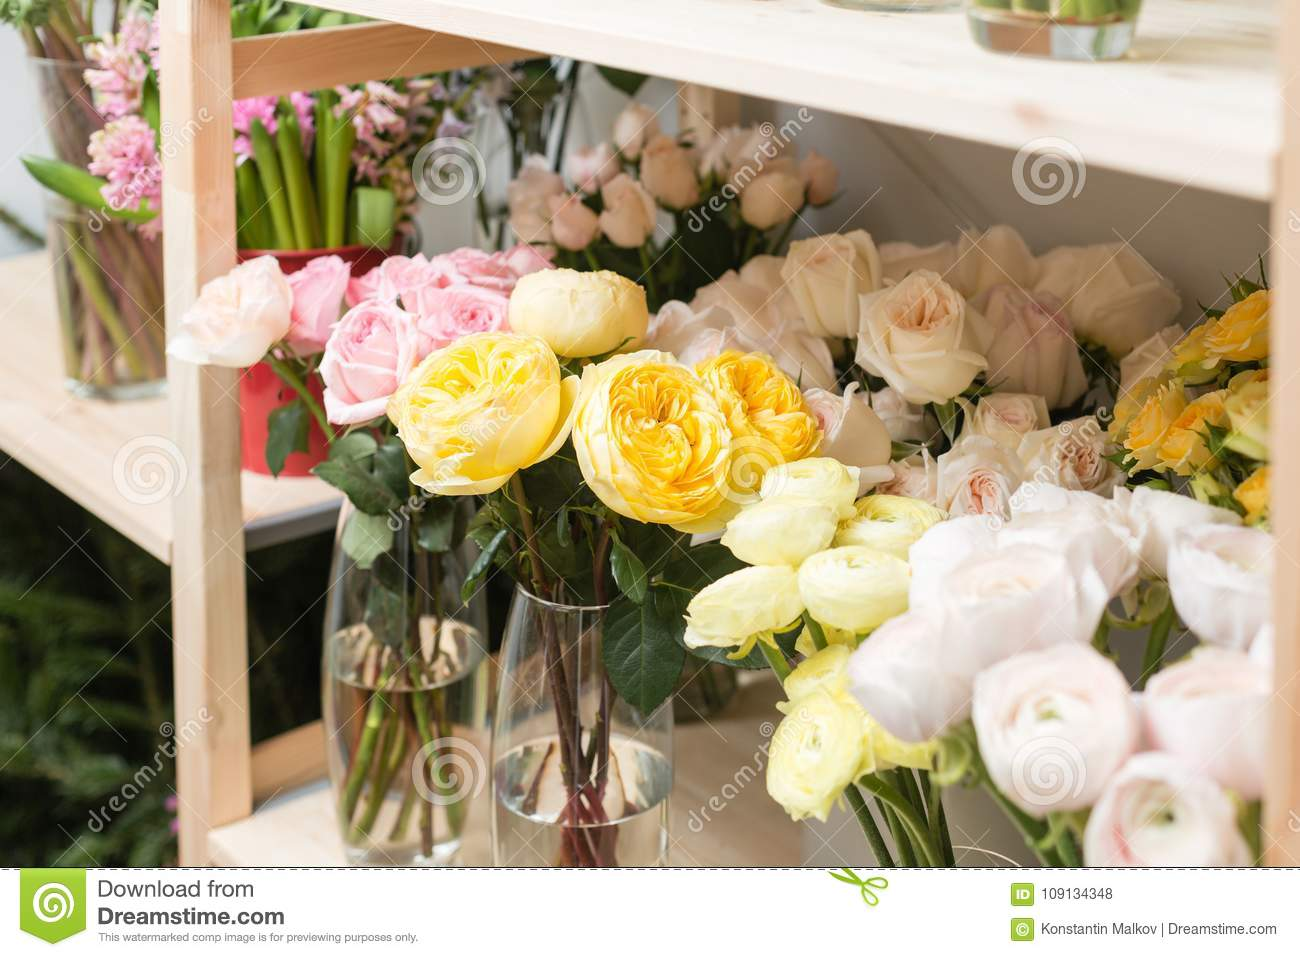 Flower shop concept different varieties fresh spring flowers in download flower shop concept different varieties fresh spring flowers in refrigerator room for flowers mightylinksfo